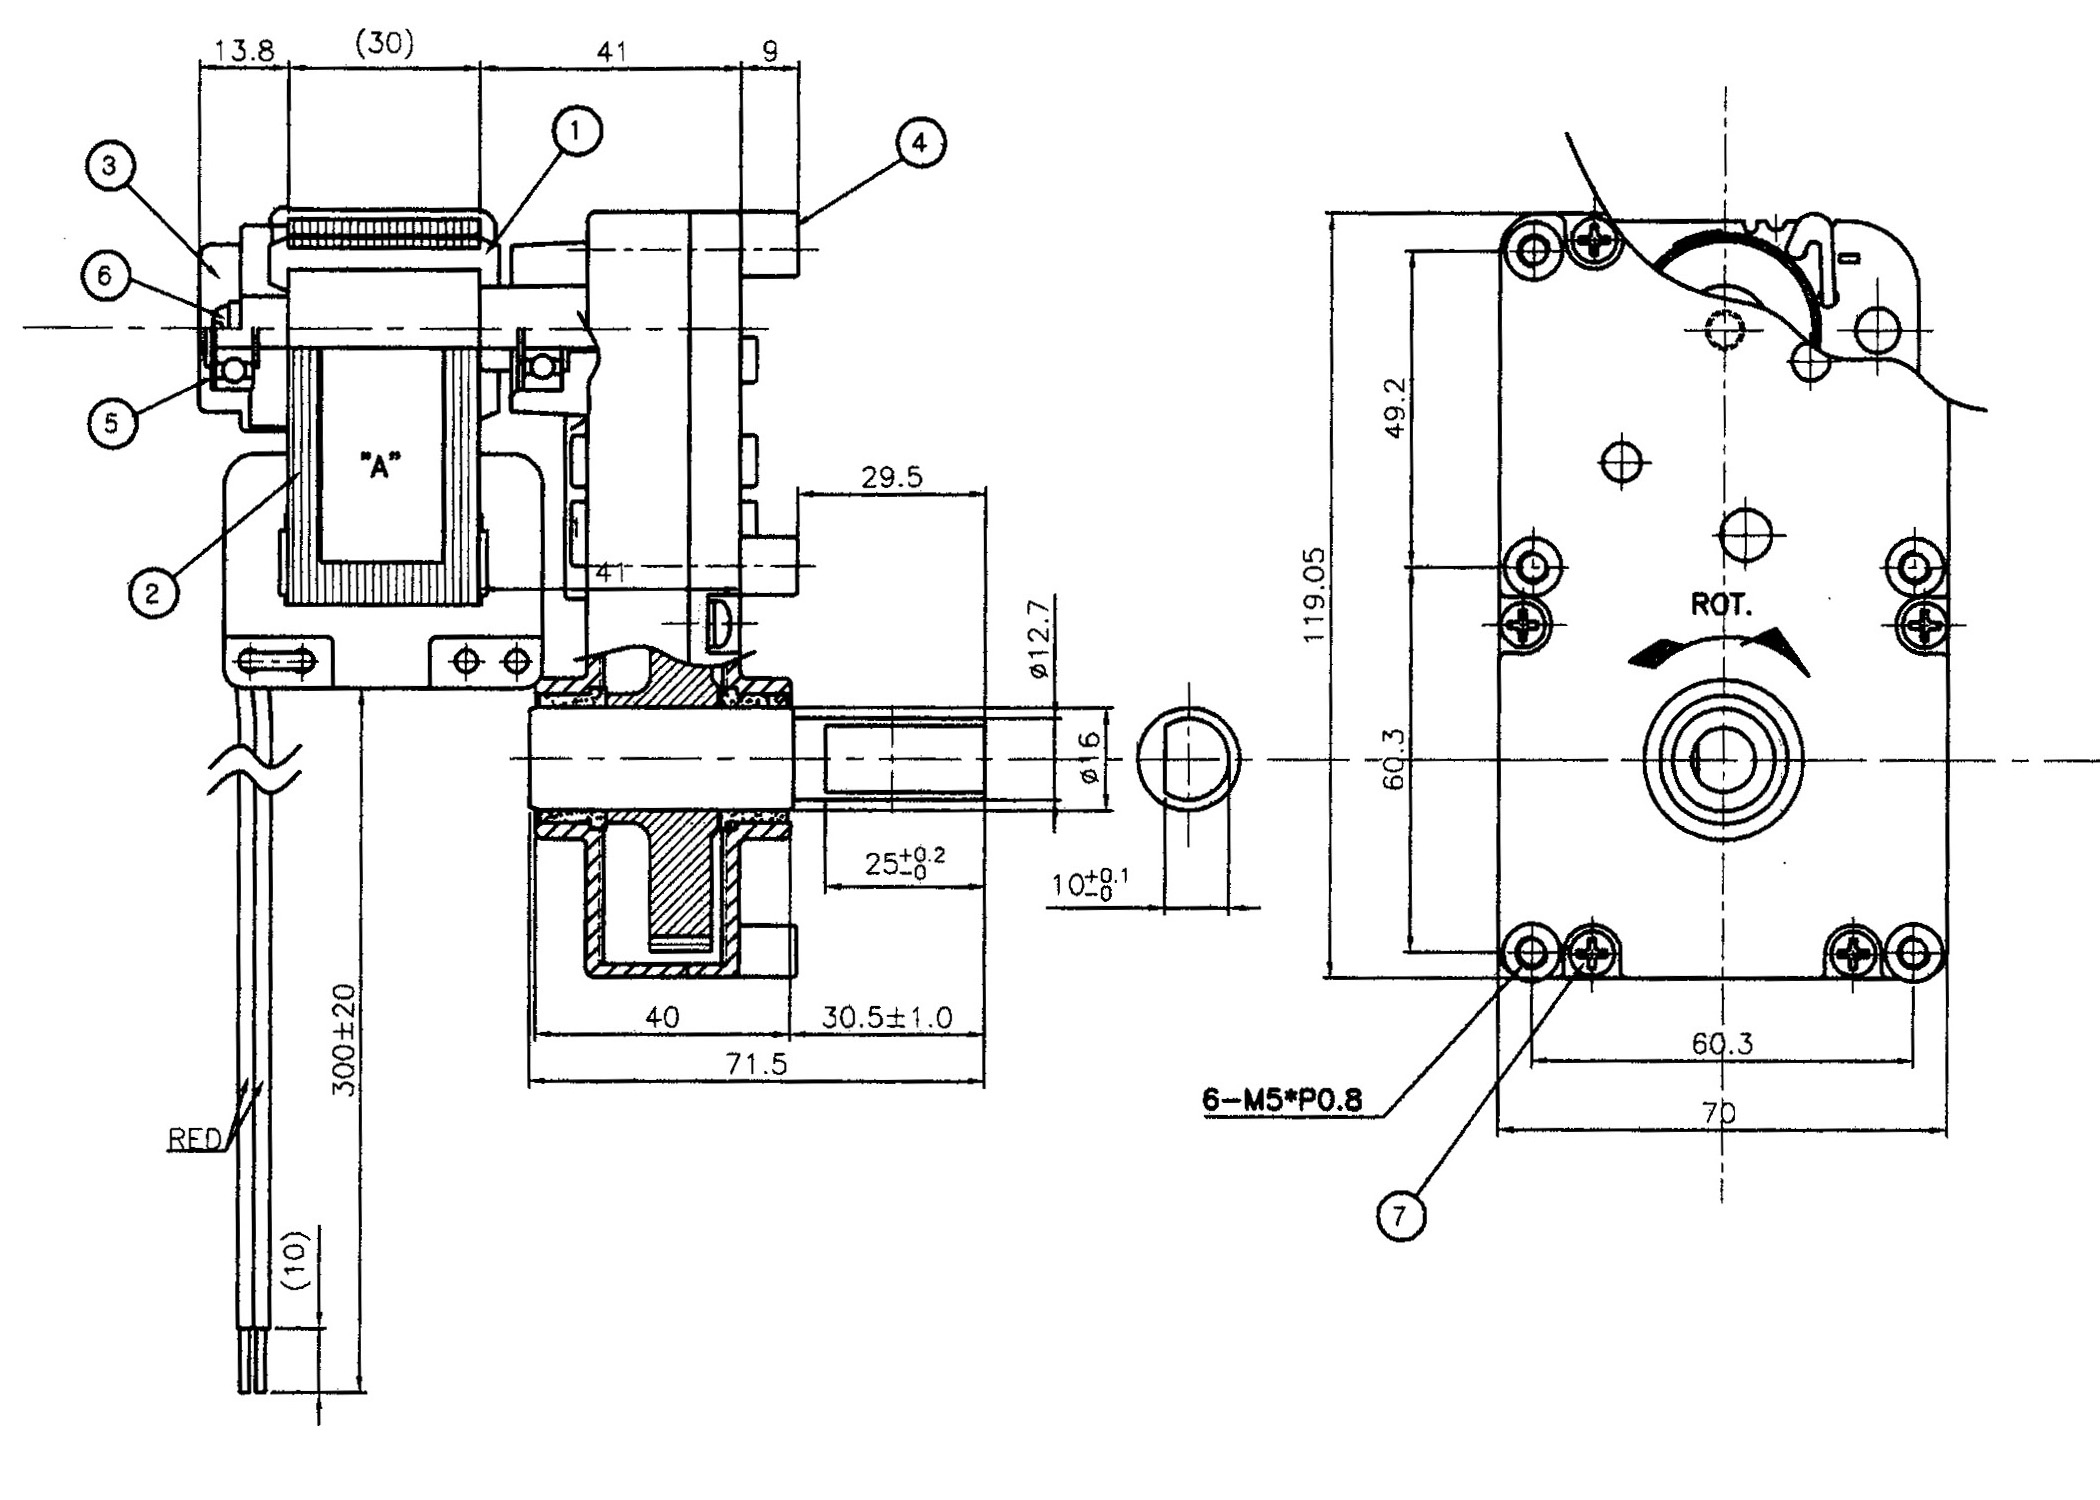 Product > C-FRAME(SHADED POLE) & GEARED MOTOR > PELLET STOVE TYPE